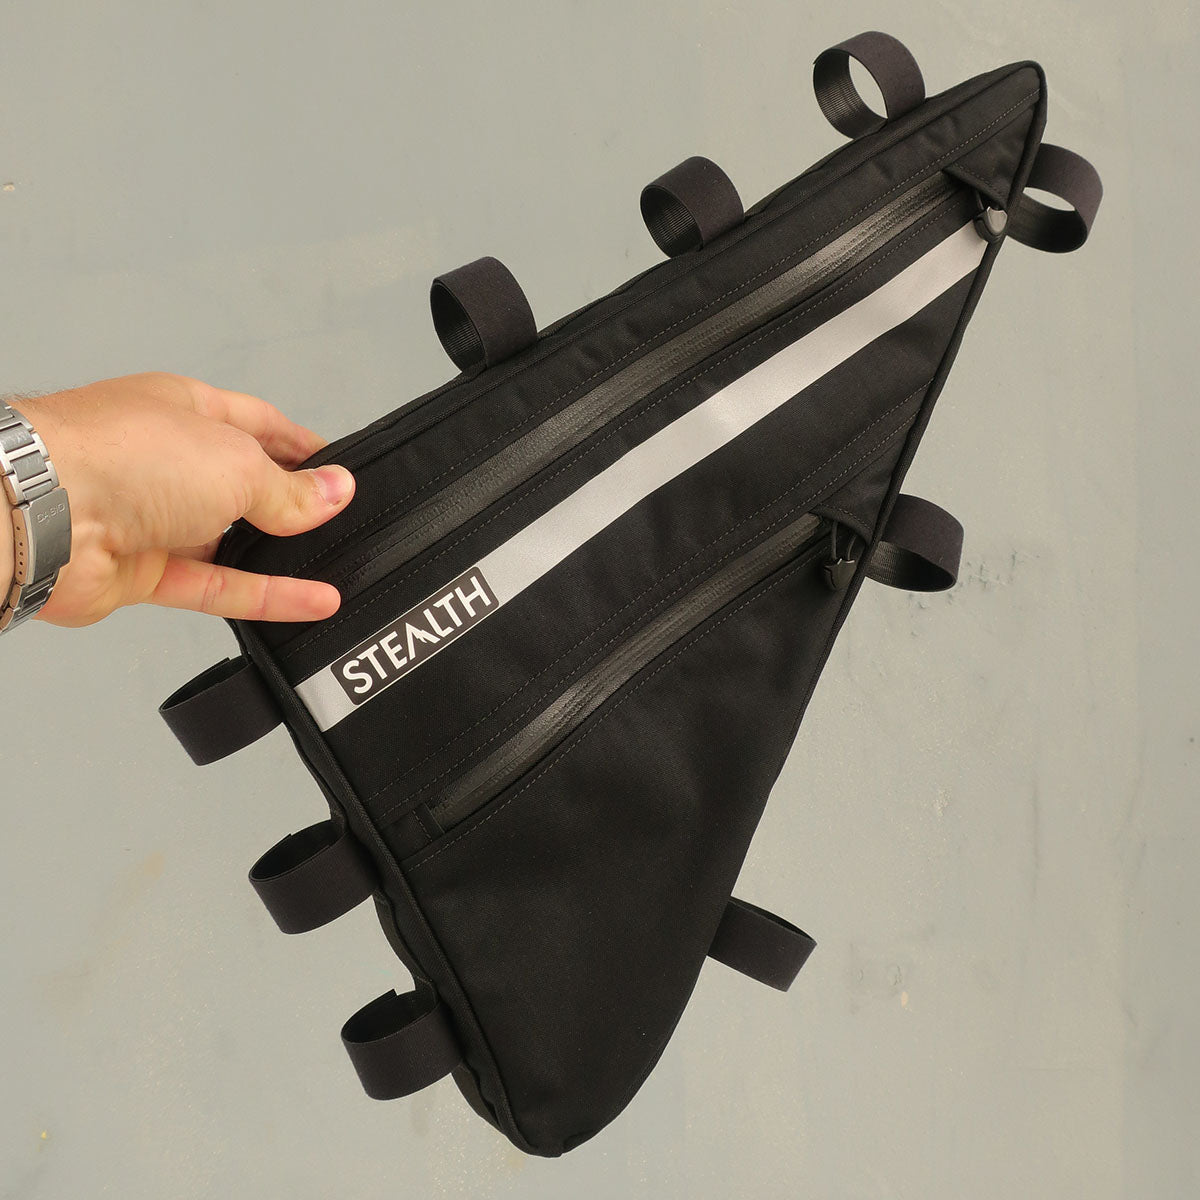 Black and reflective frame bag for cycle touring